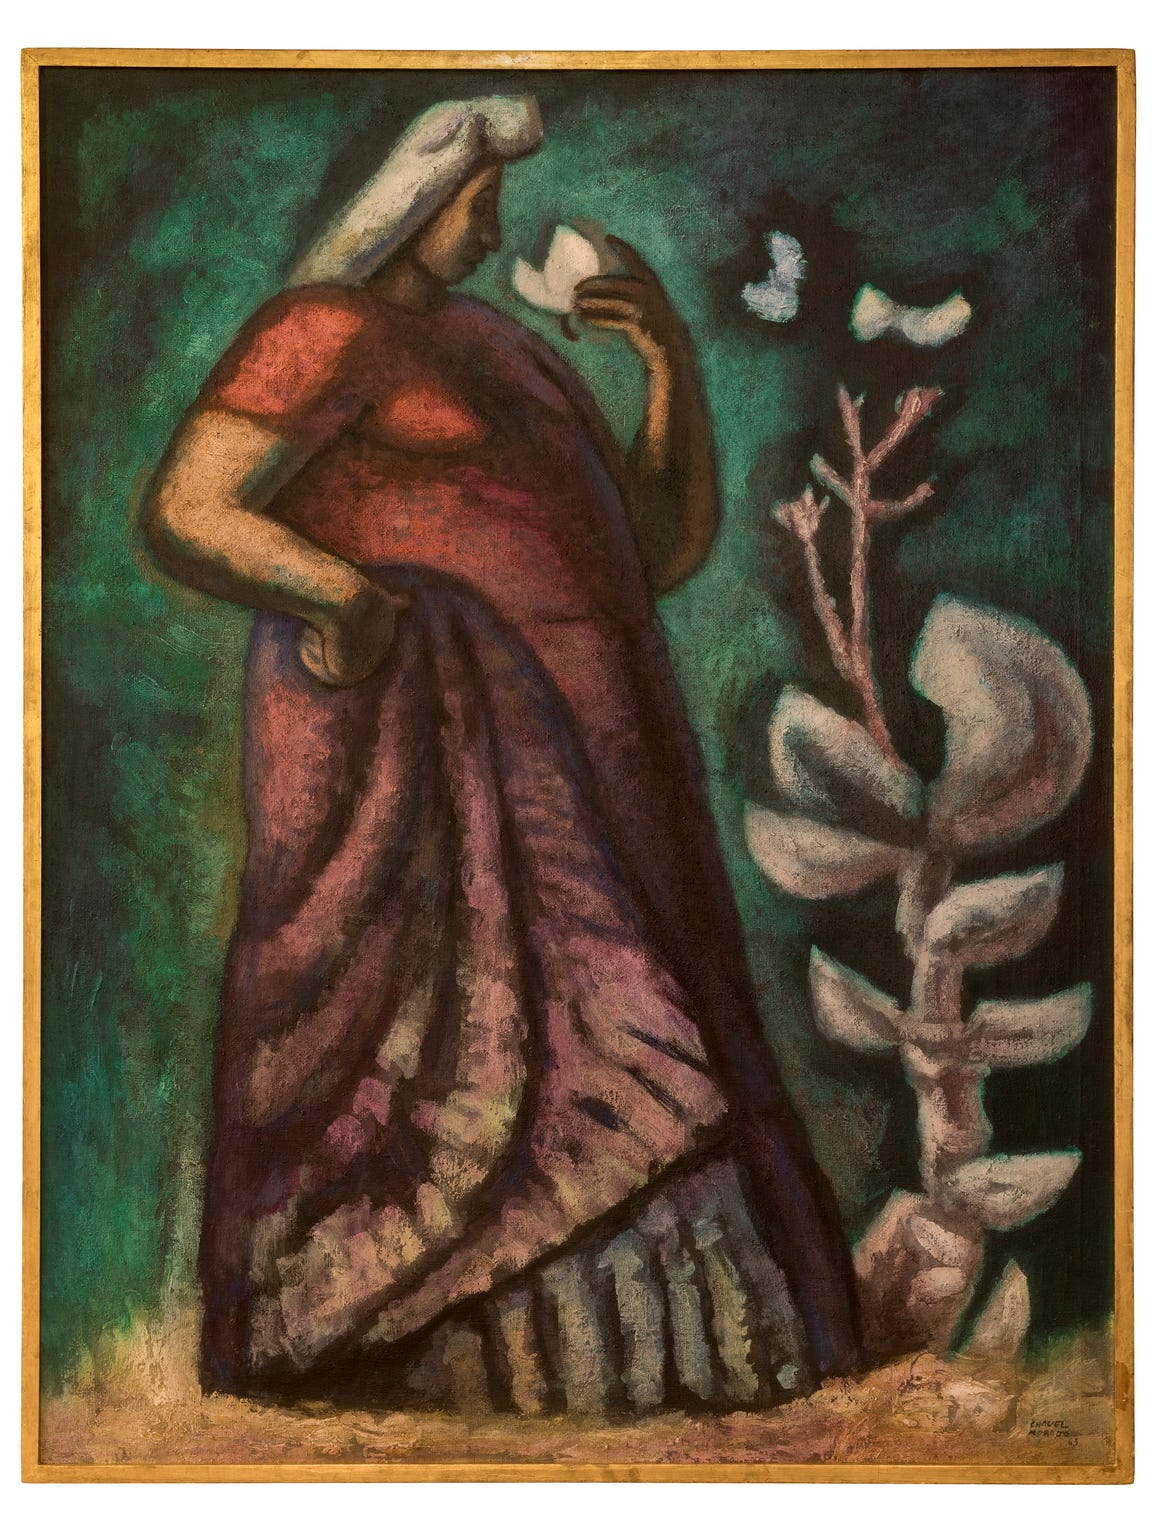 La Gran Tehuana (The Great Tehuana) 1963, by José Chávez